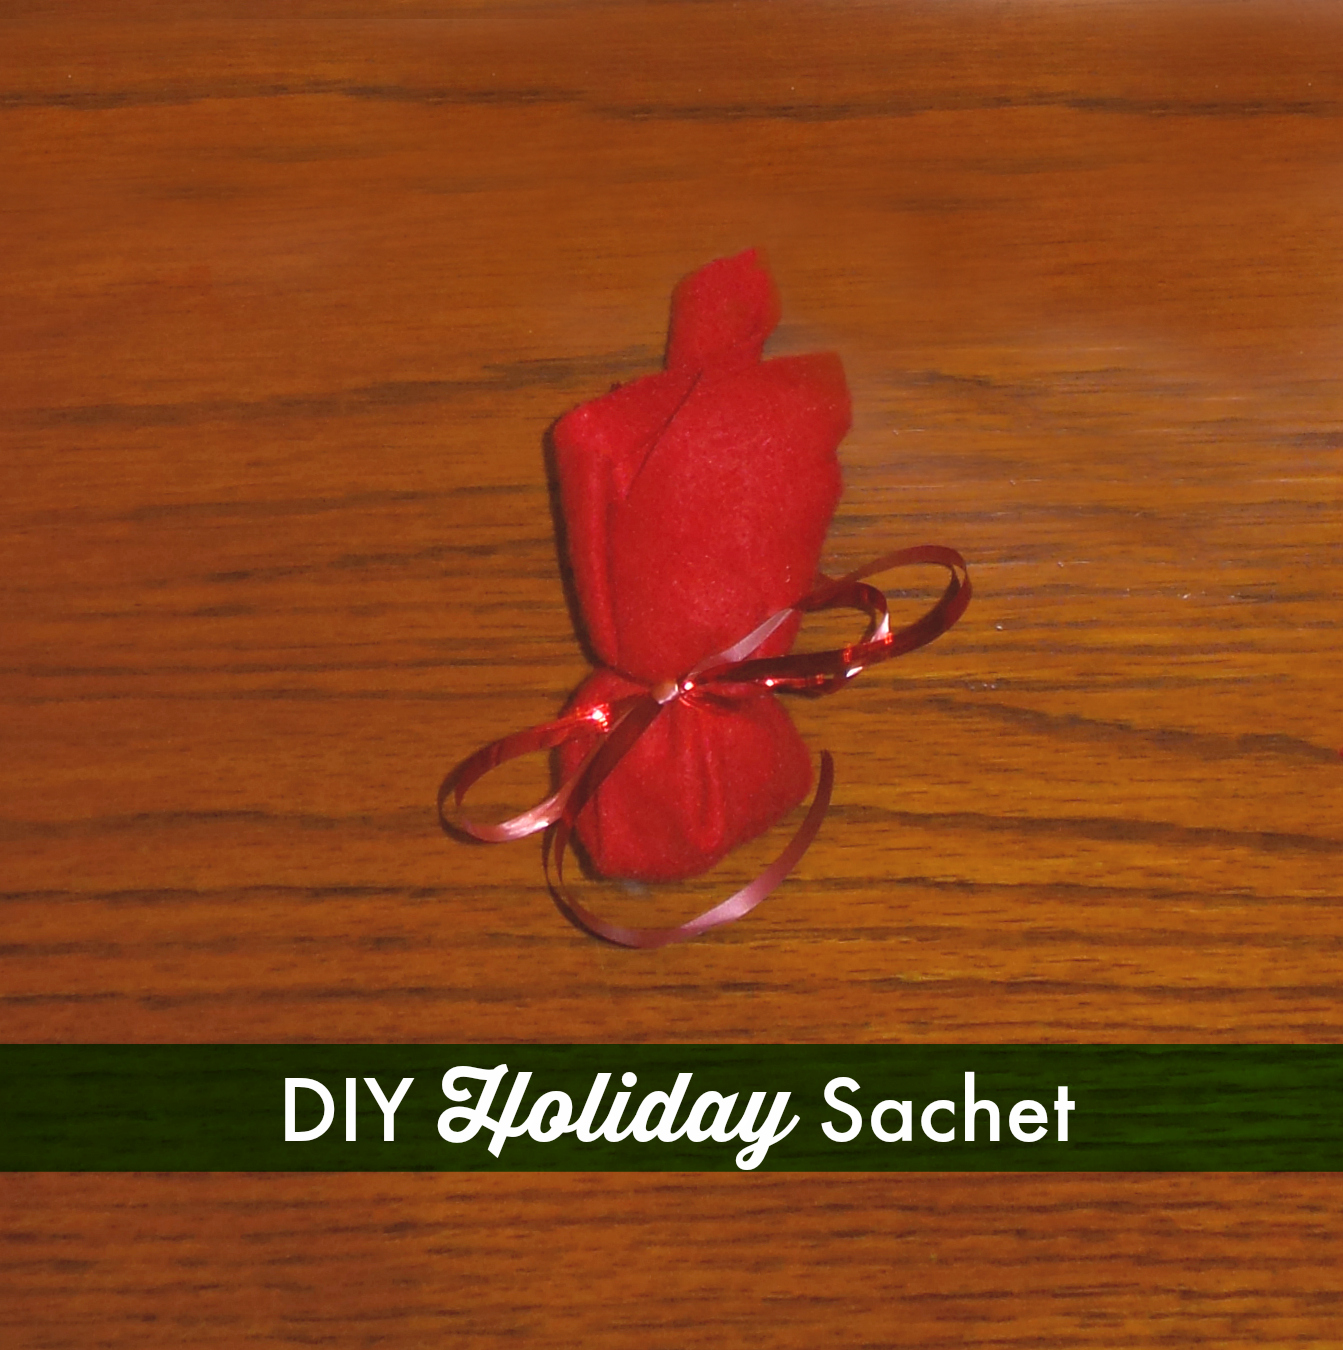 diy holiday sachet